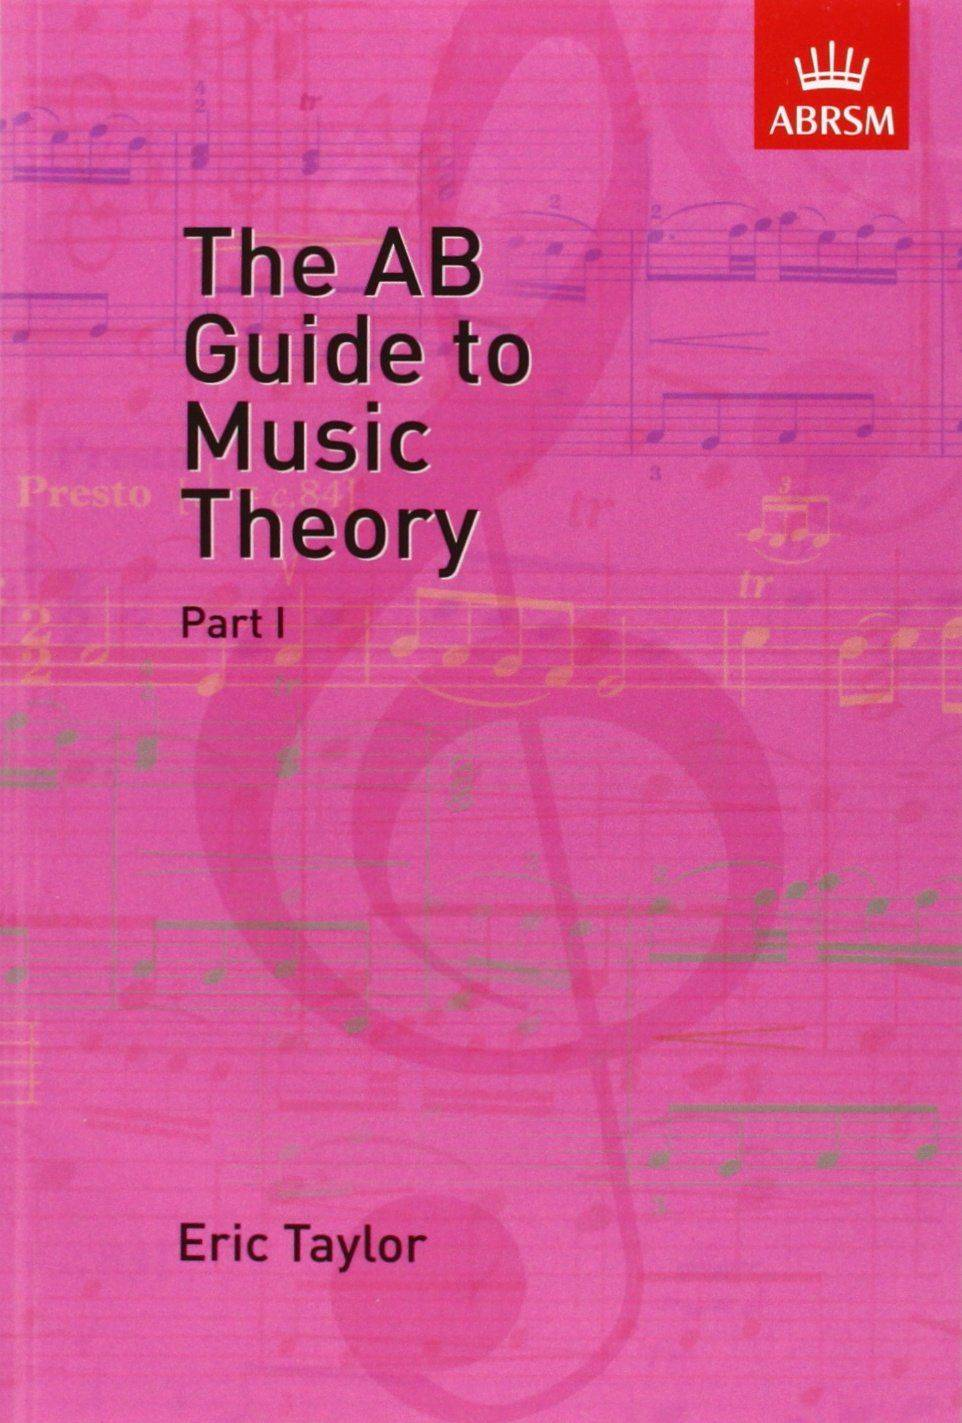 the-ab-guide-to-music-theory-part-1